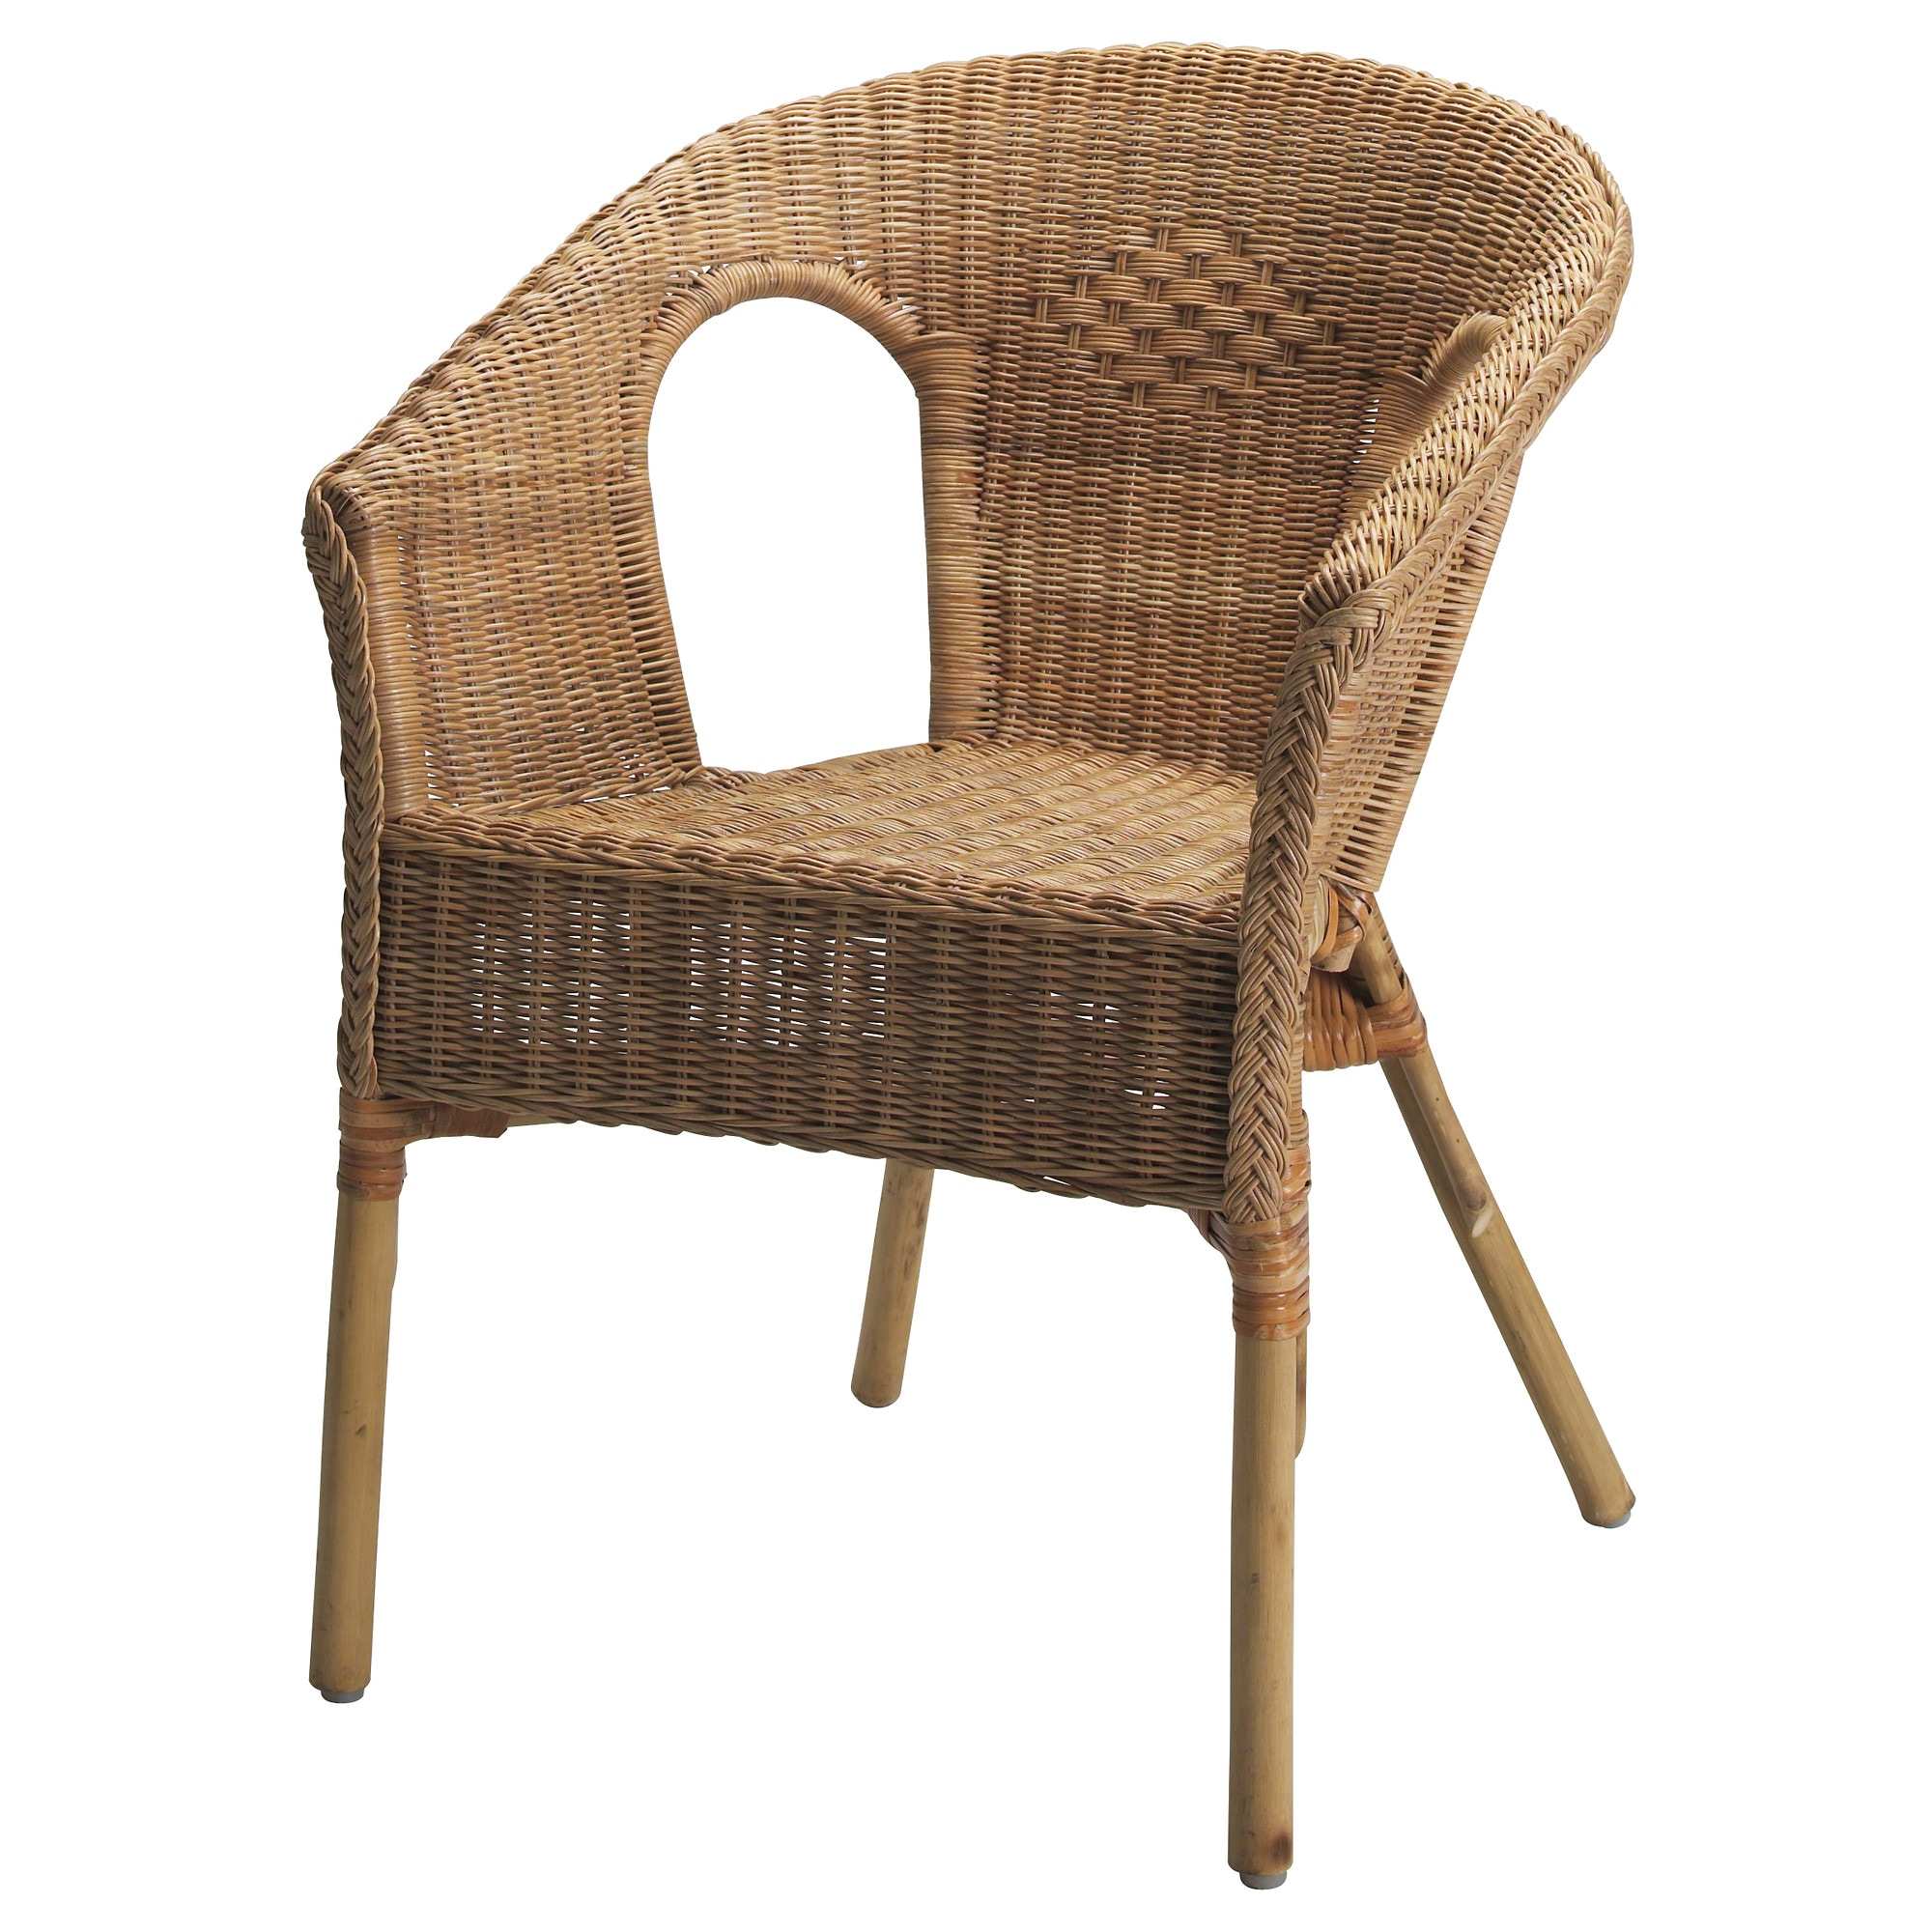 Permalink to New Wicker Chairs Ikea